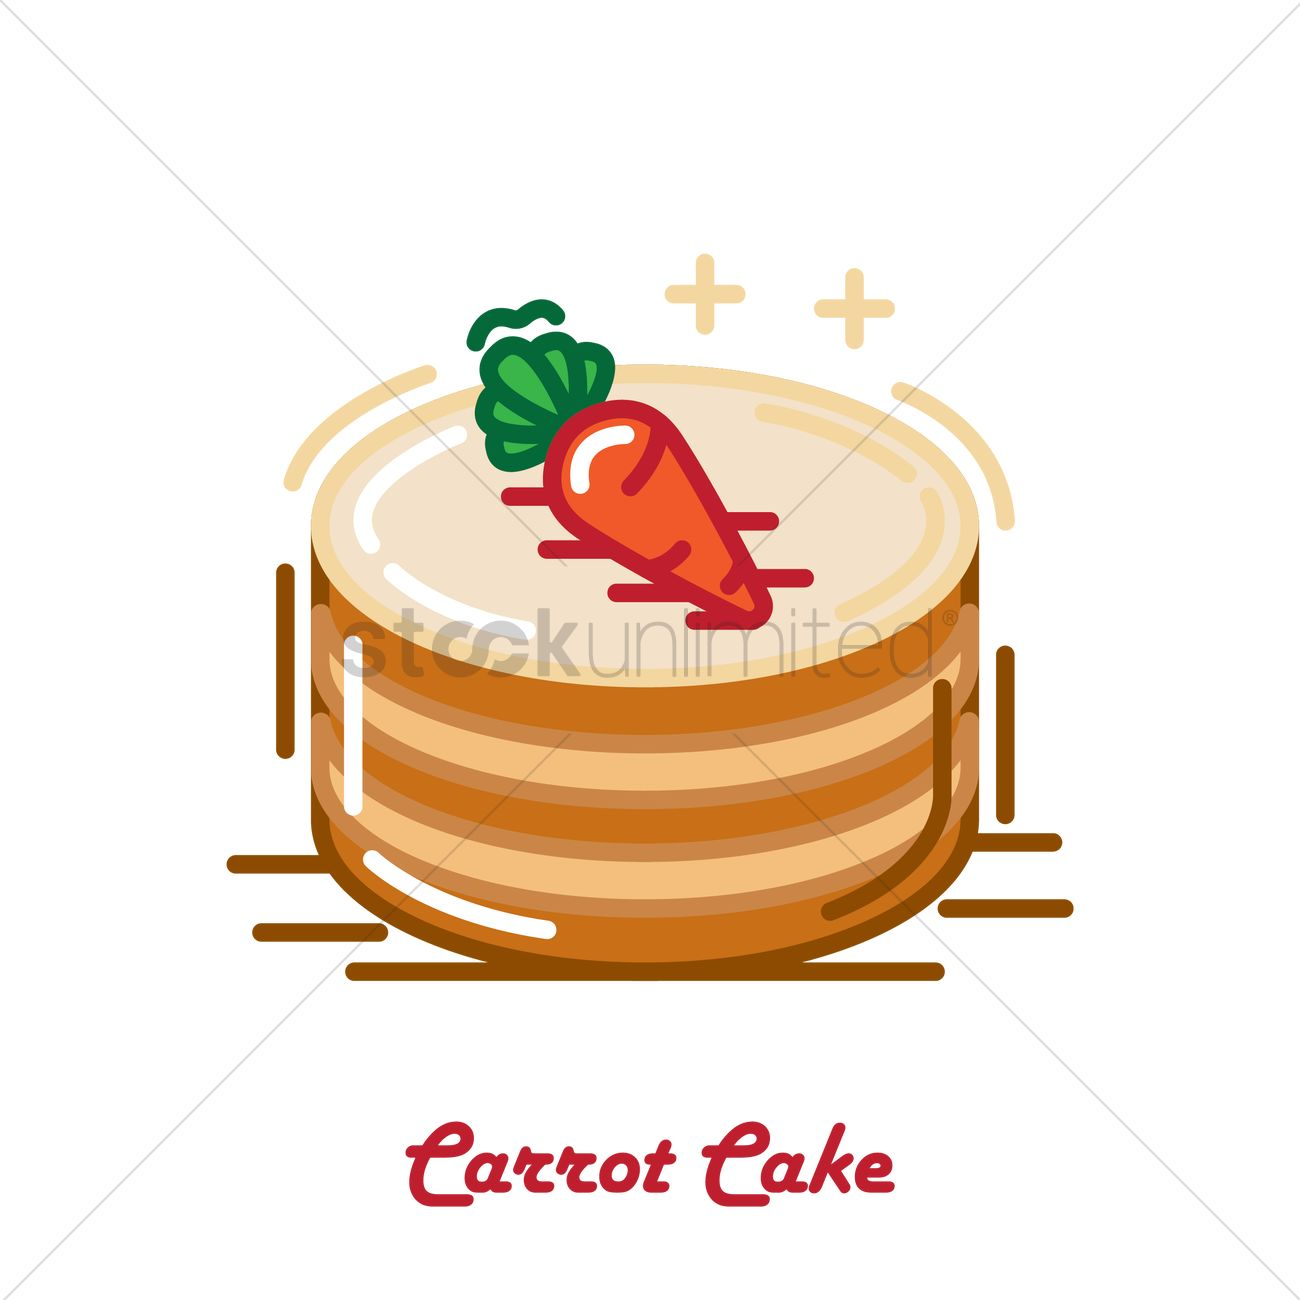 Carrot cake Vector Image - 1956666 | StockUnlimited